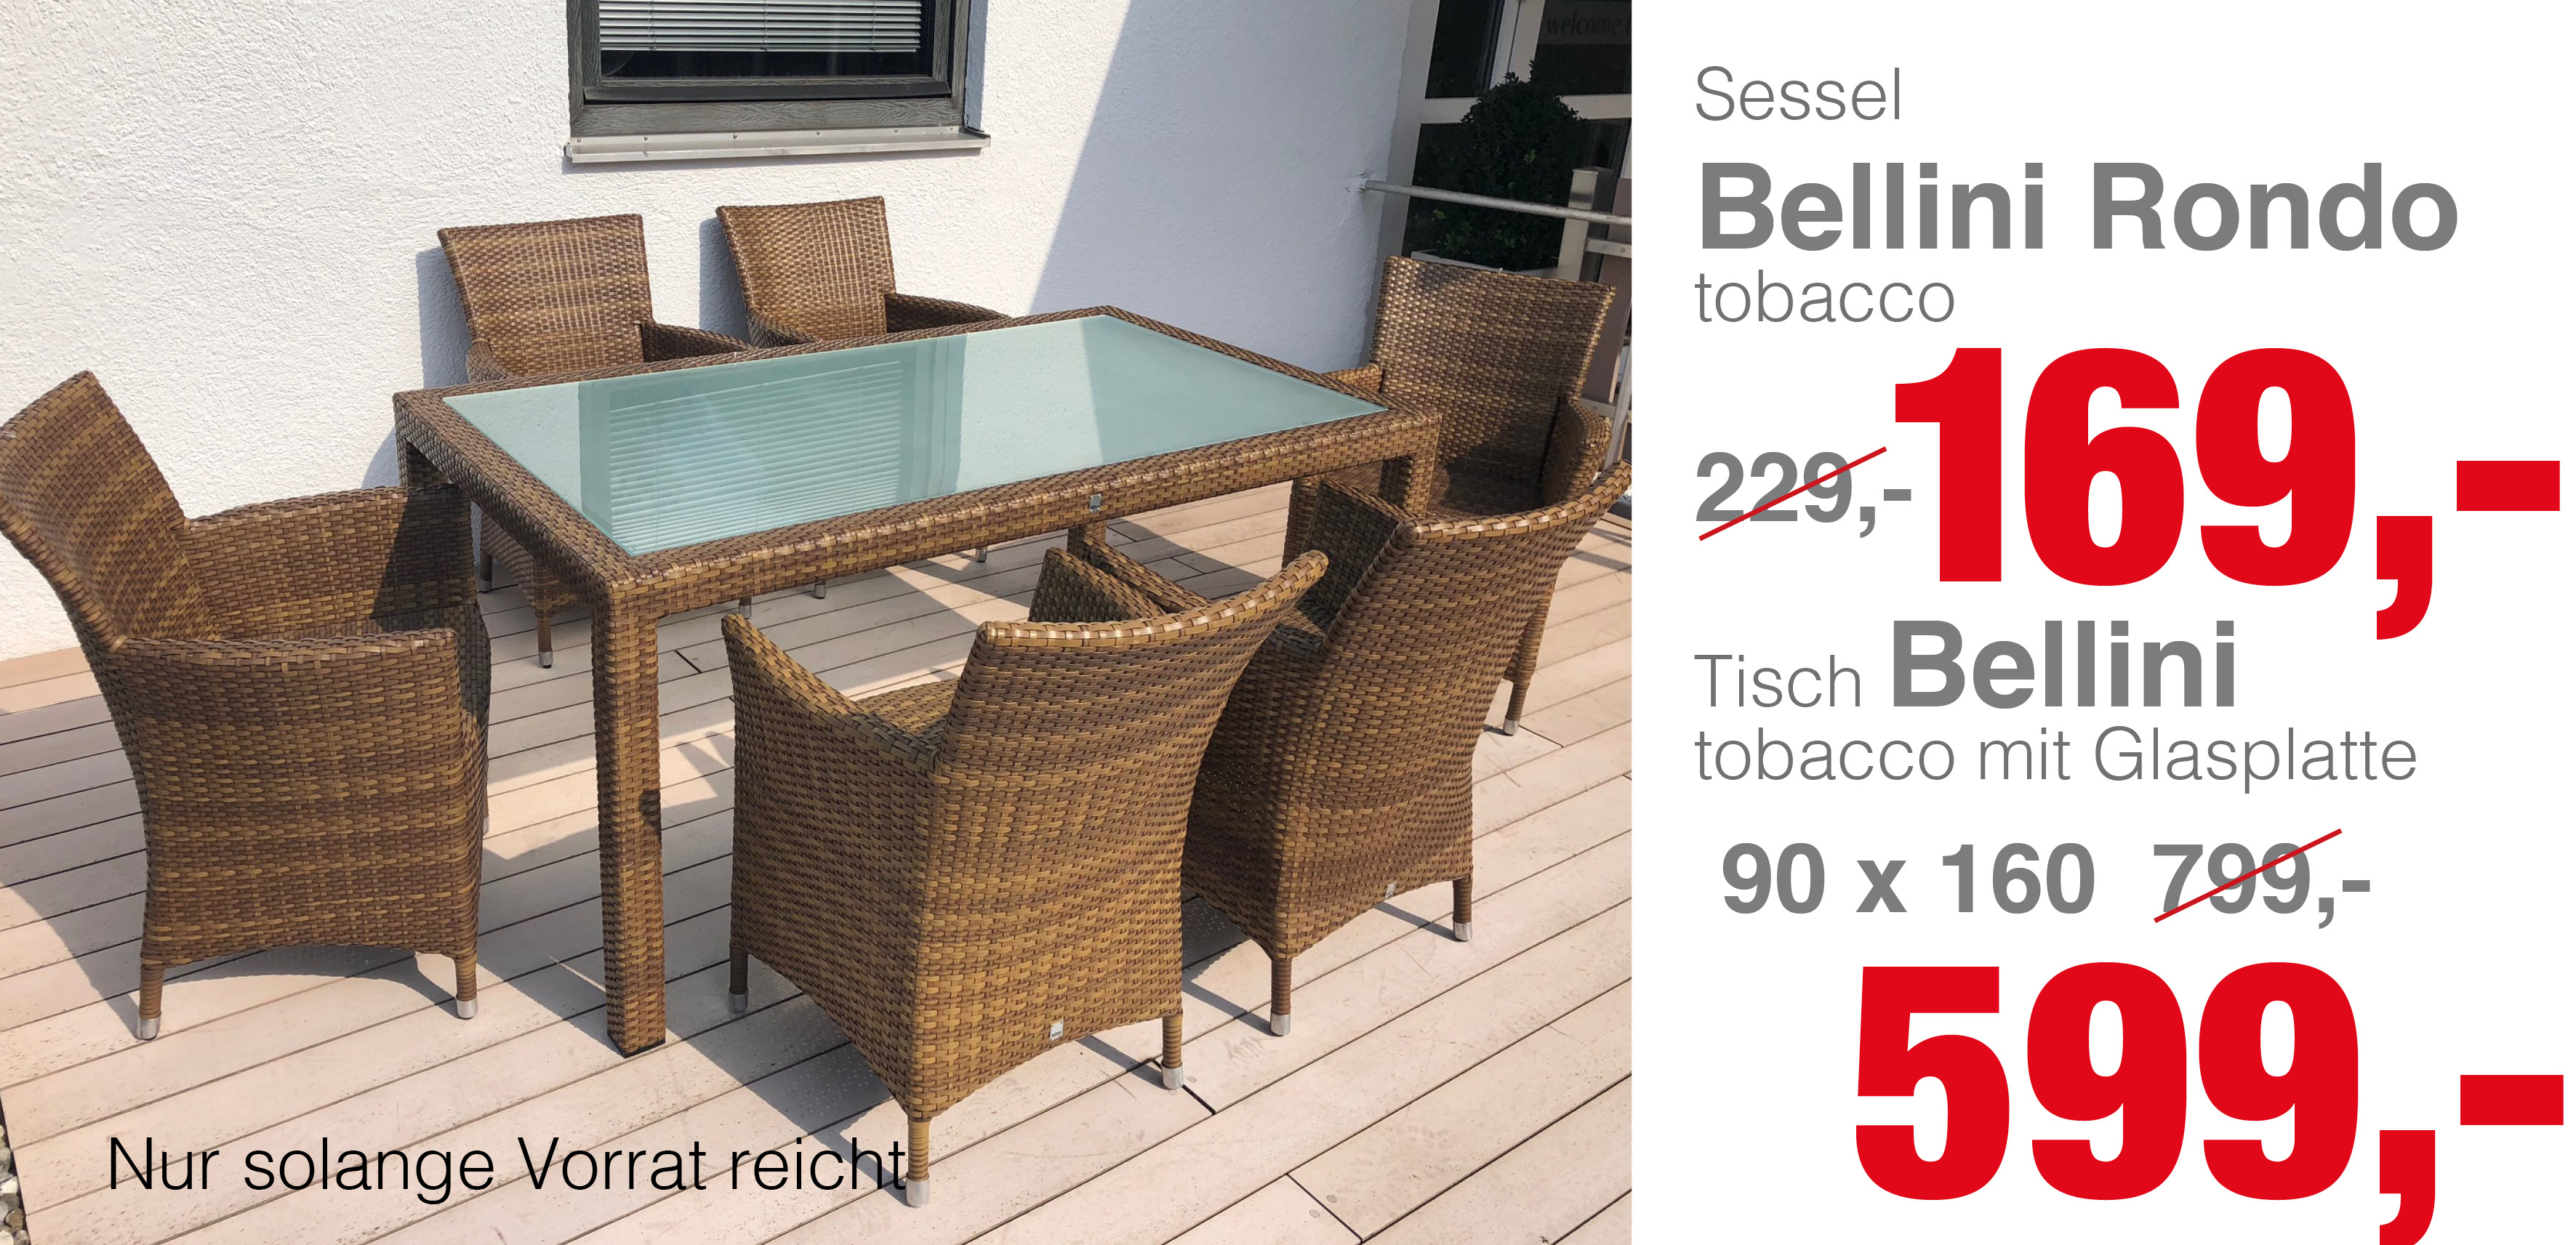 tisch bellini tobacco mit glasplatte mbm gartenm bel lagerverkauf. Black Bedroom Furniture Sets. Home Design Ideas